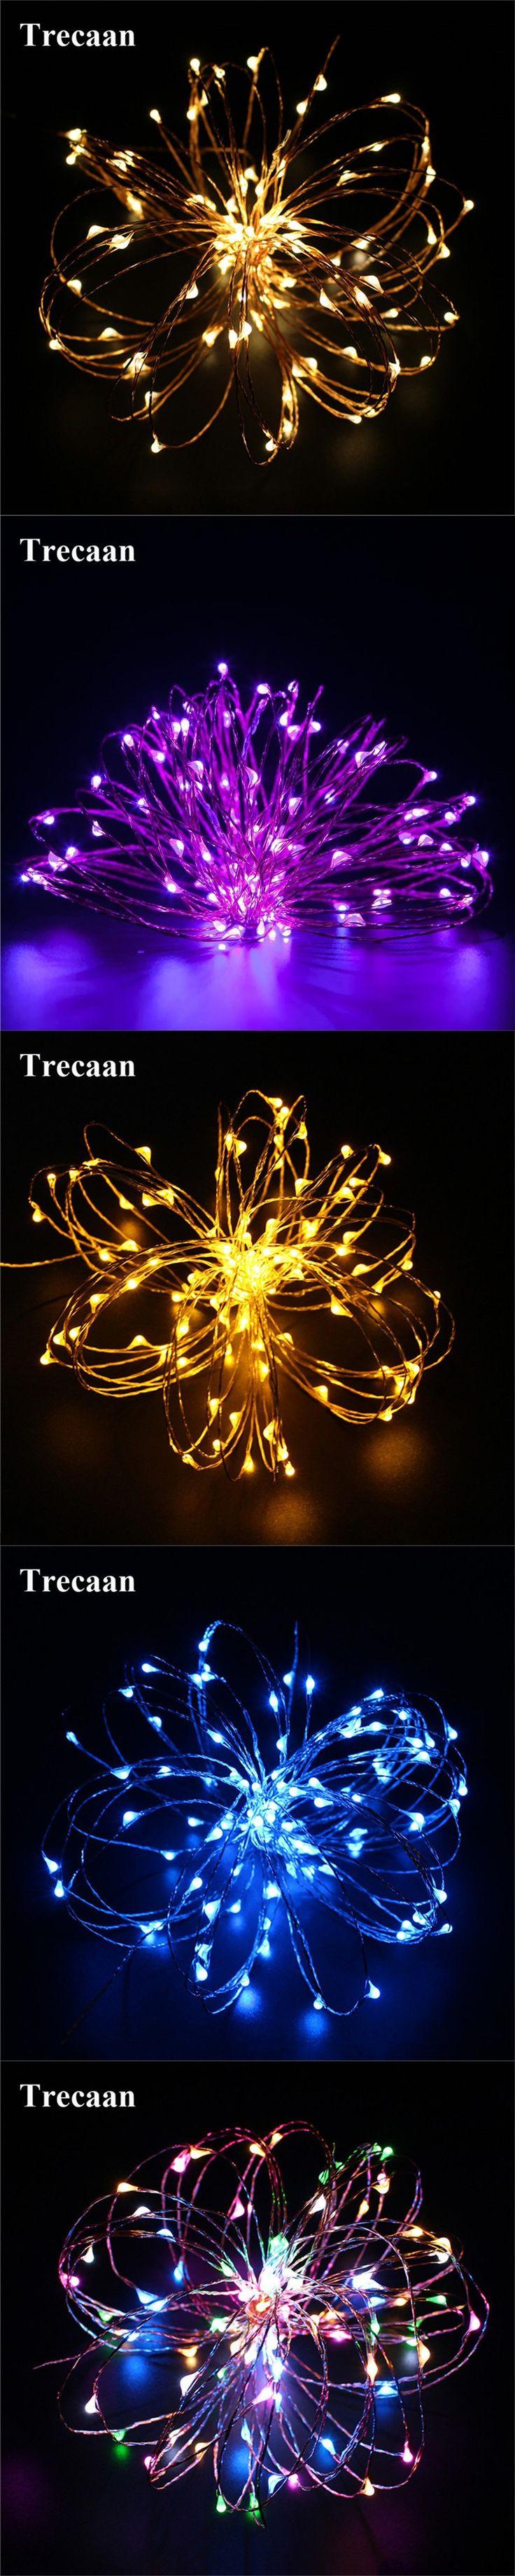 Trecaan Solar LED string light 10M 100Leds Copper Wire waterproof Fairy Light Xmas Wedding Party Garden outdoor Decoration